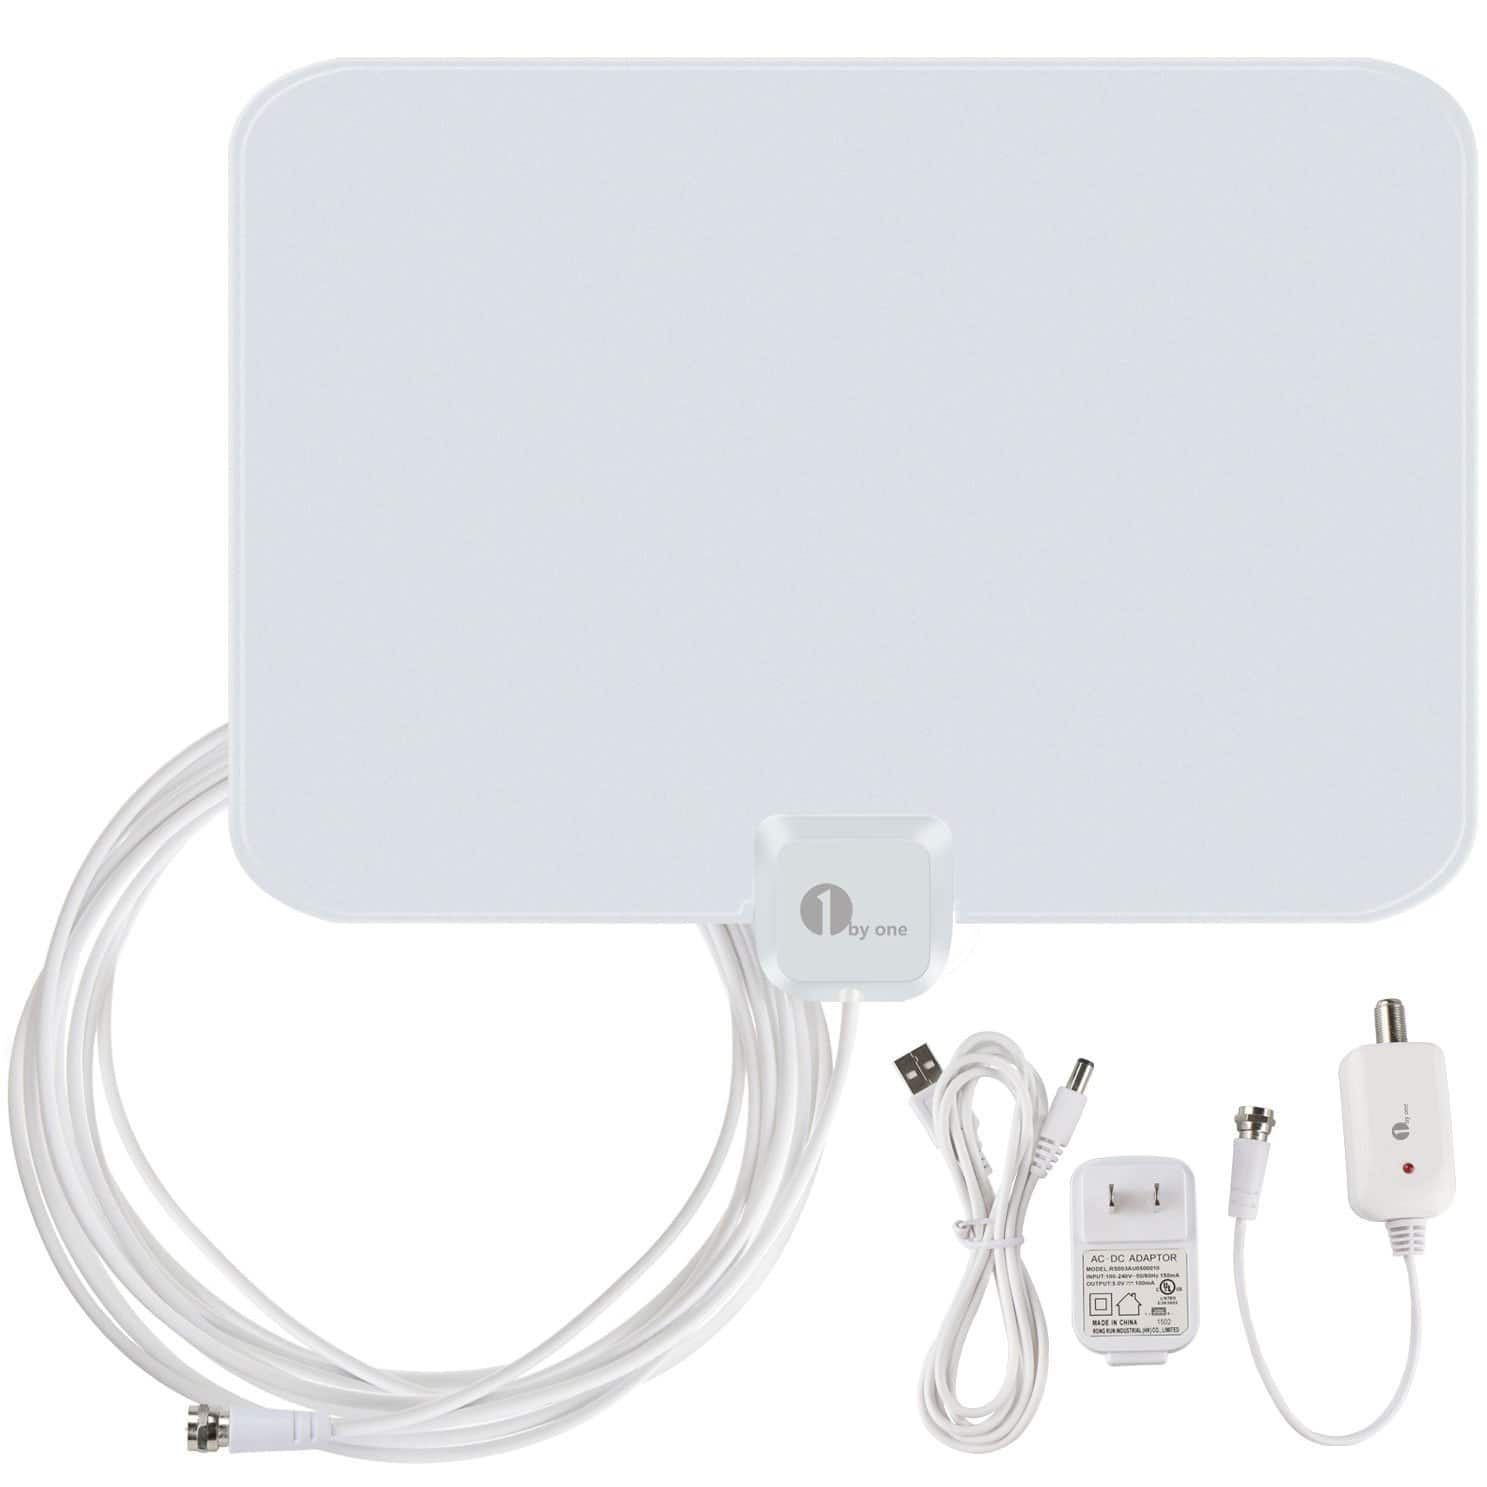 1byone OUS00-0562 Amplified HDTV Antenna 50 Miles - $19.99 AC - Free ship with Amazon Prime